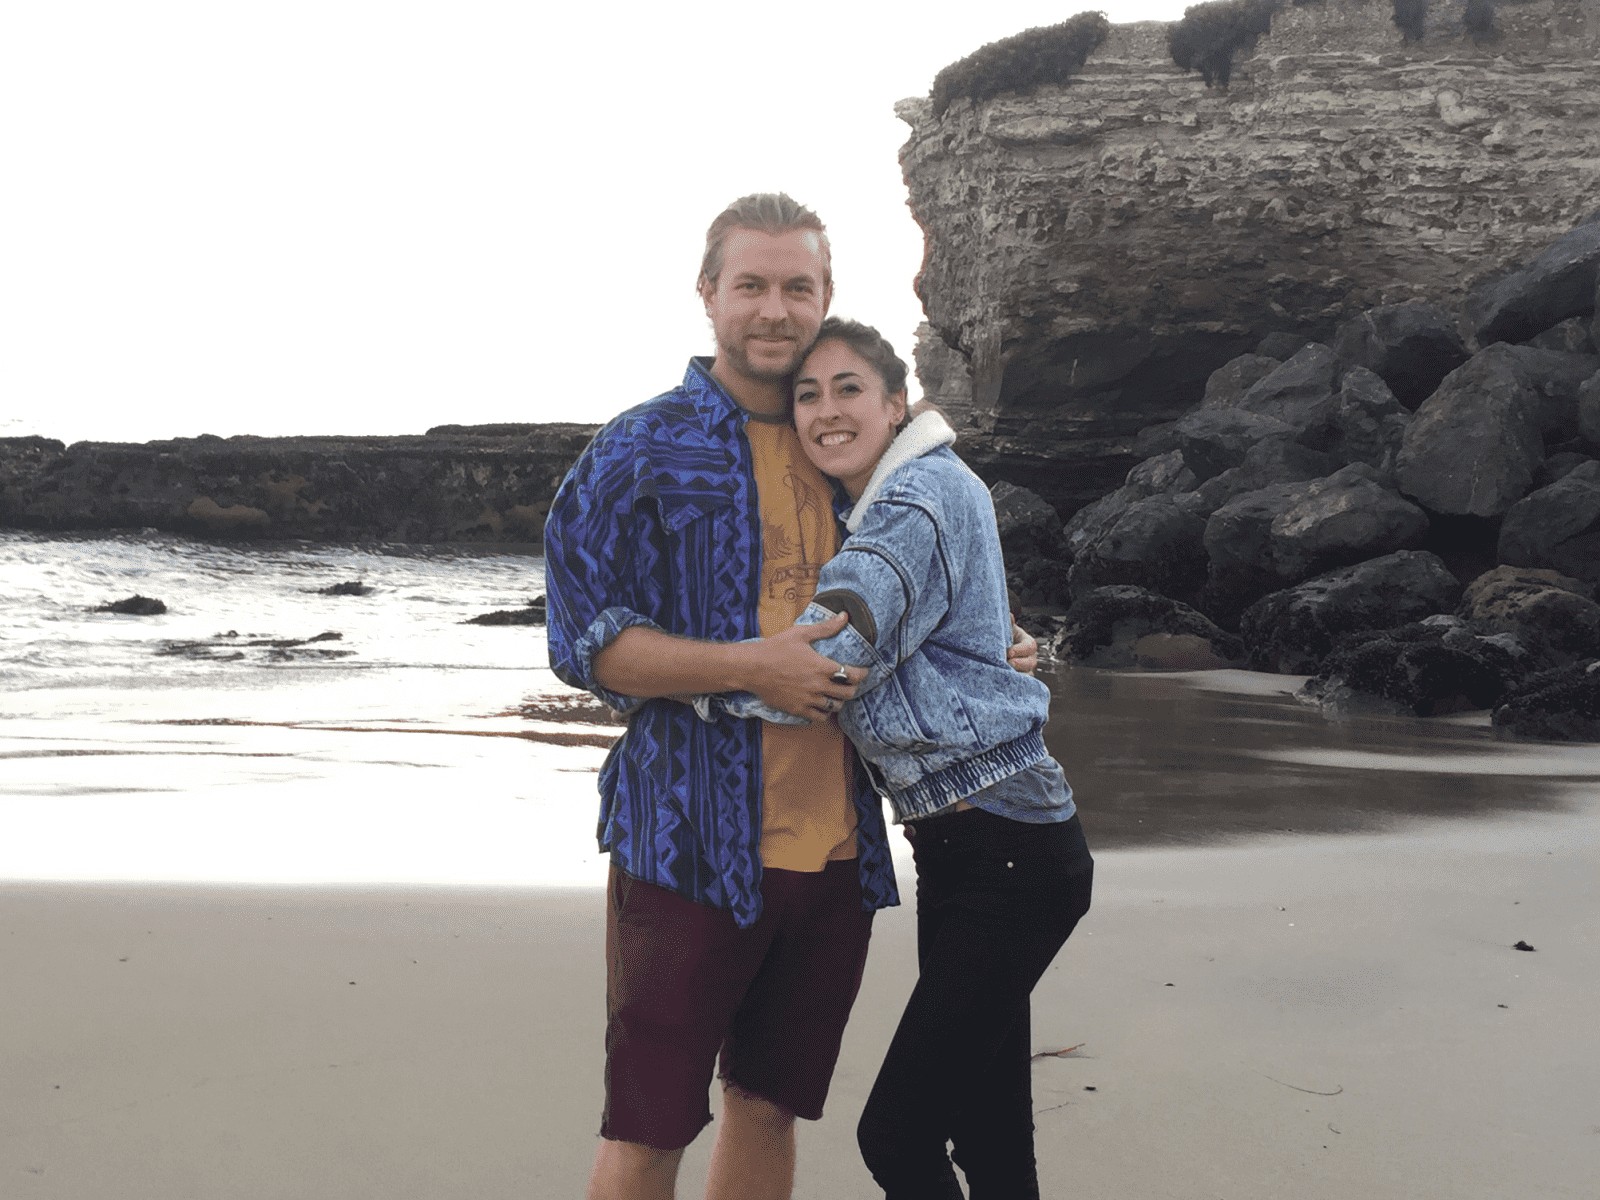 Nick & Becca from San Francisco, California, United States